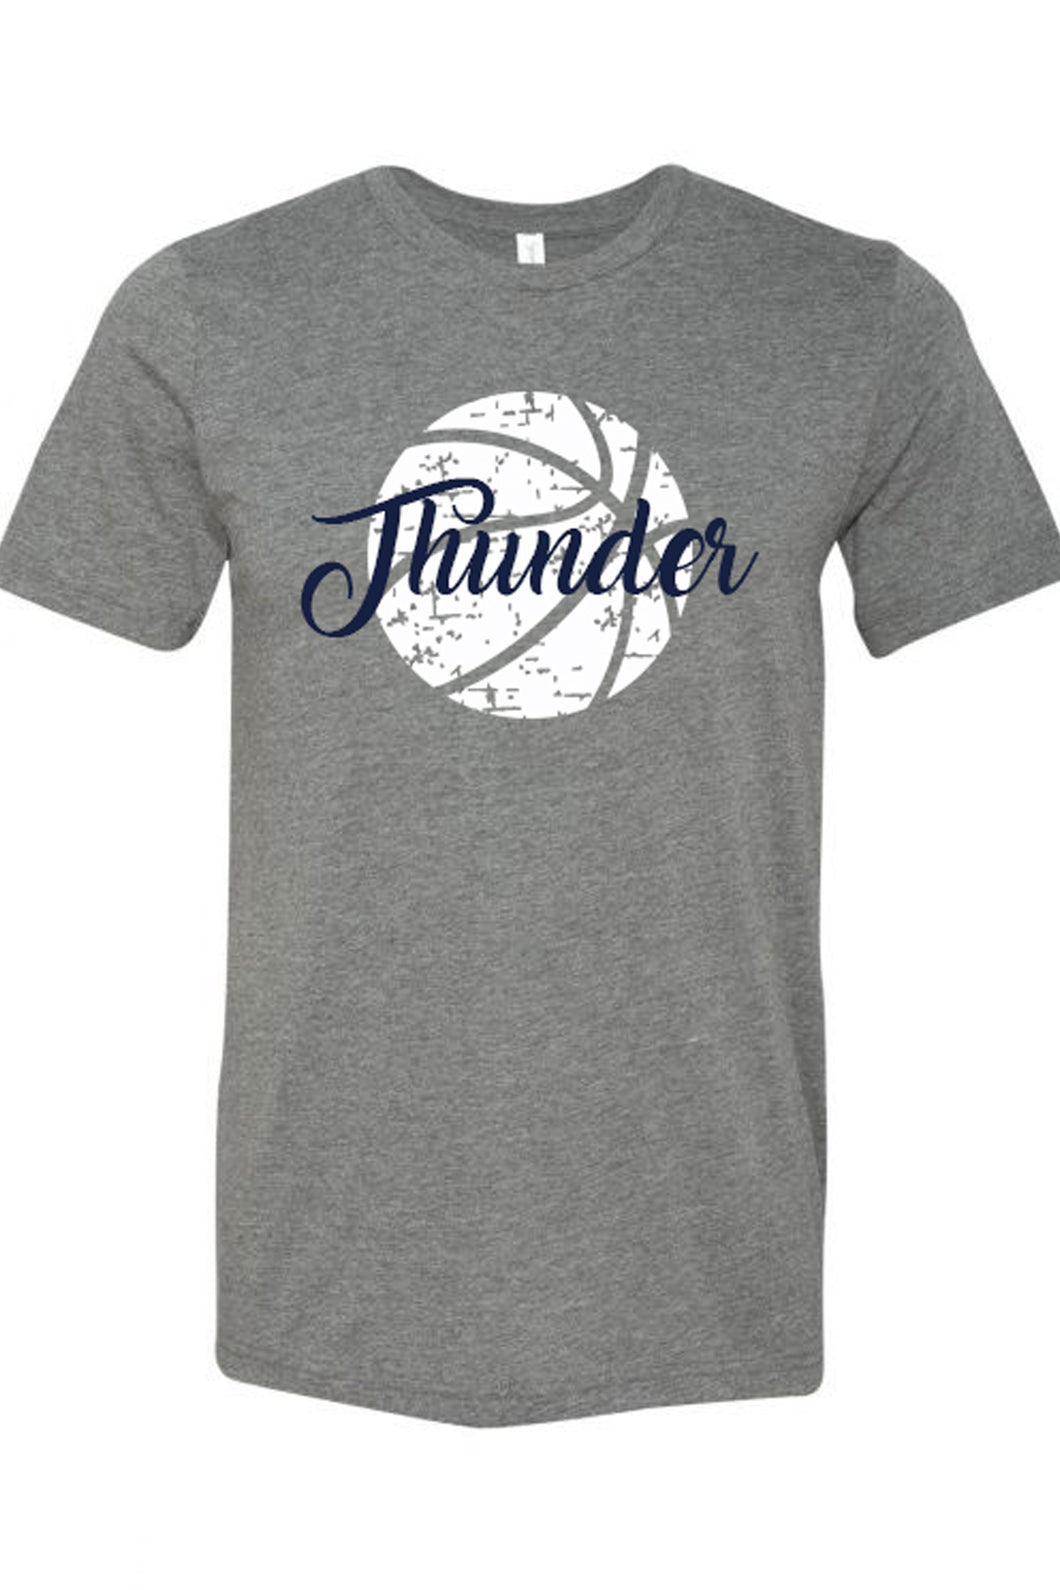 Thunder Basketball